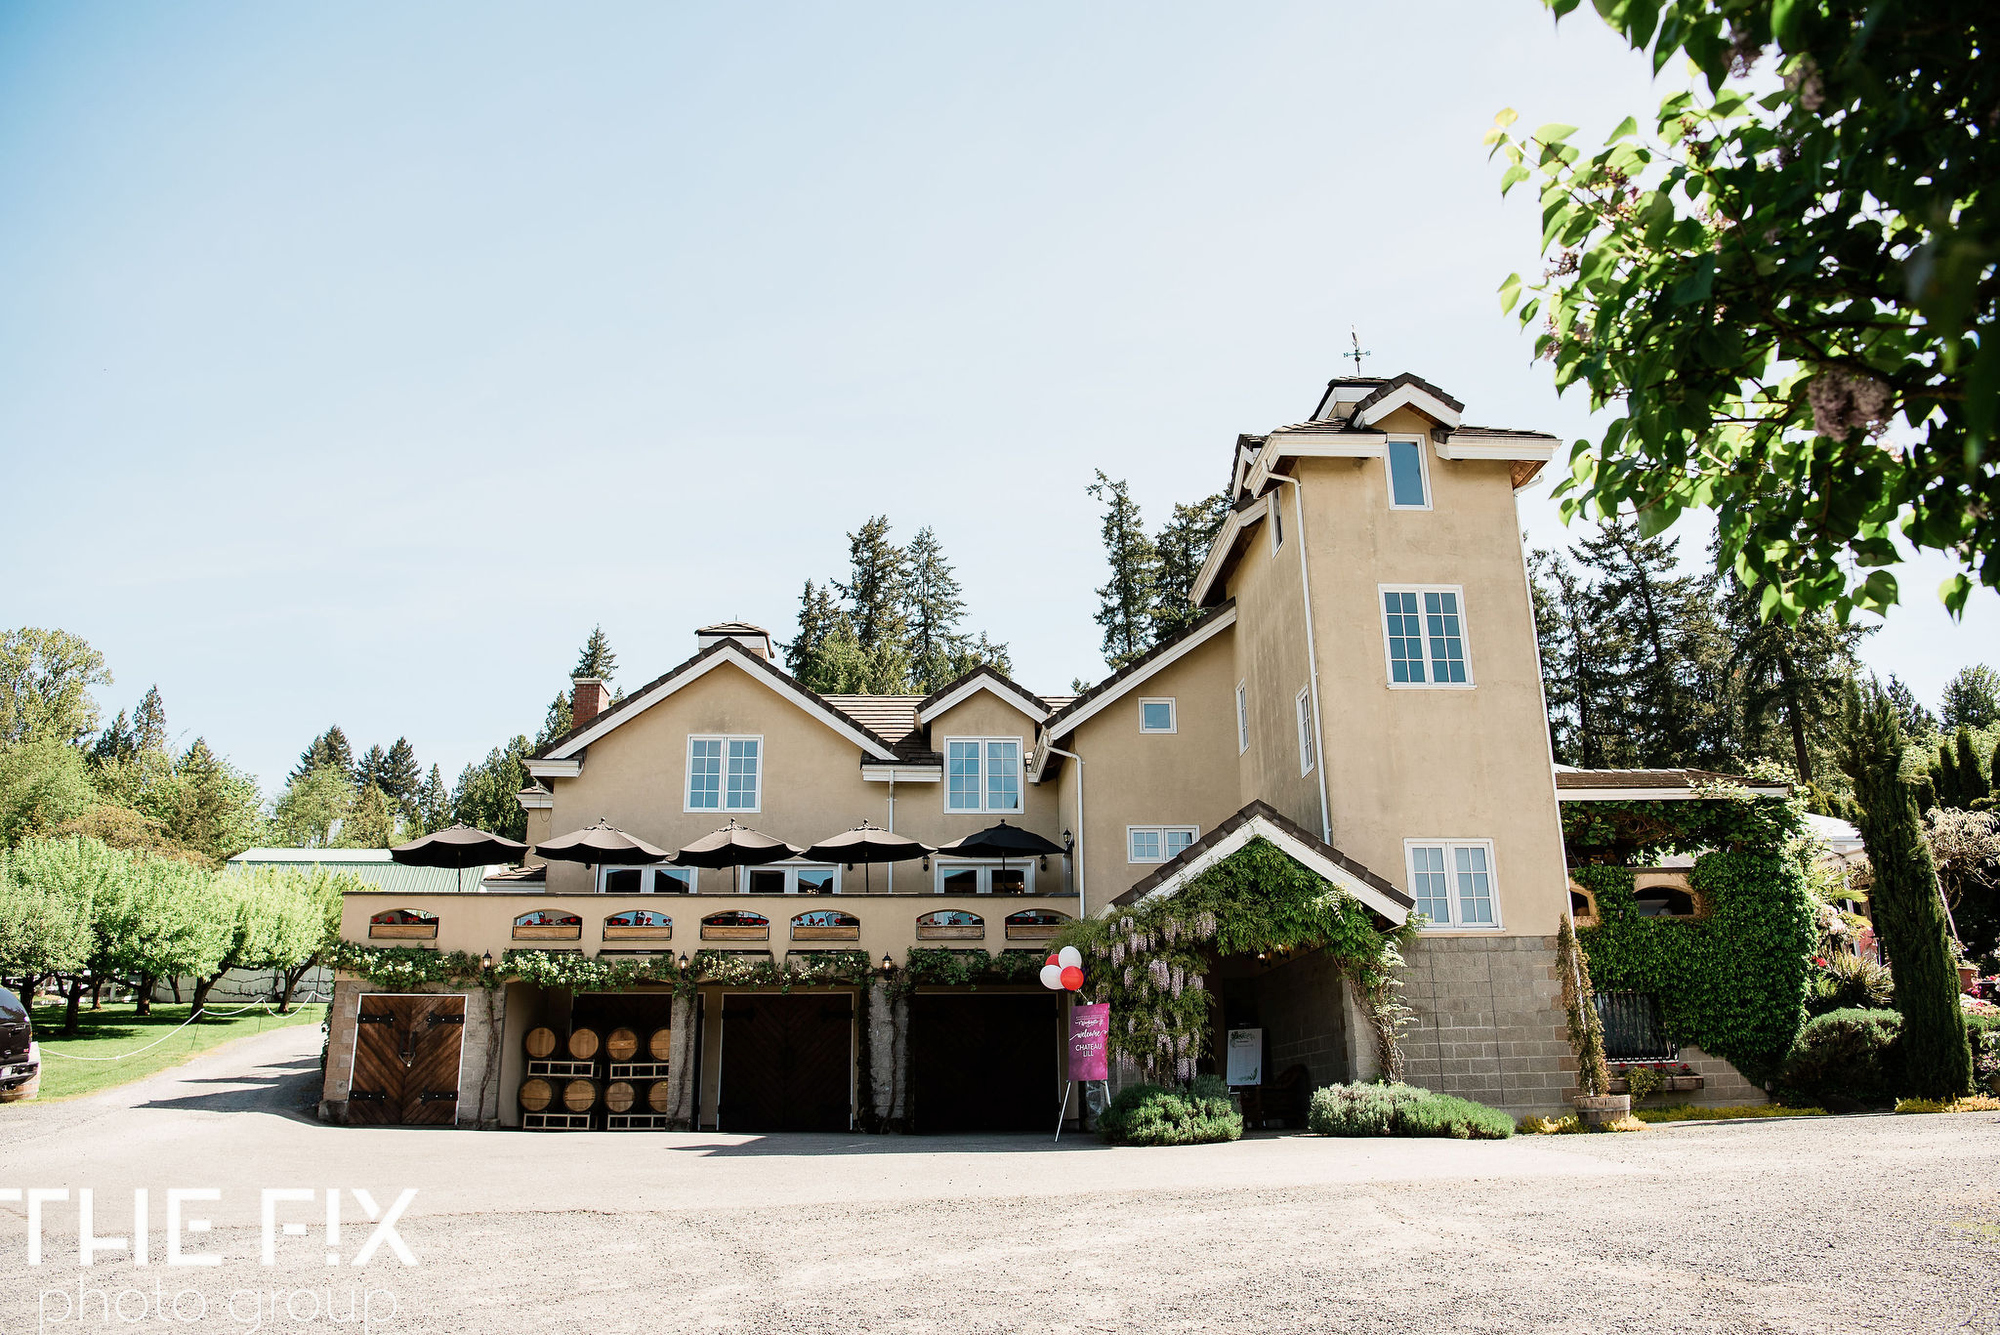 Outdoor-Venues-Woodinville-Chataeu-Lill-24.jpg